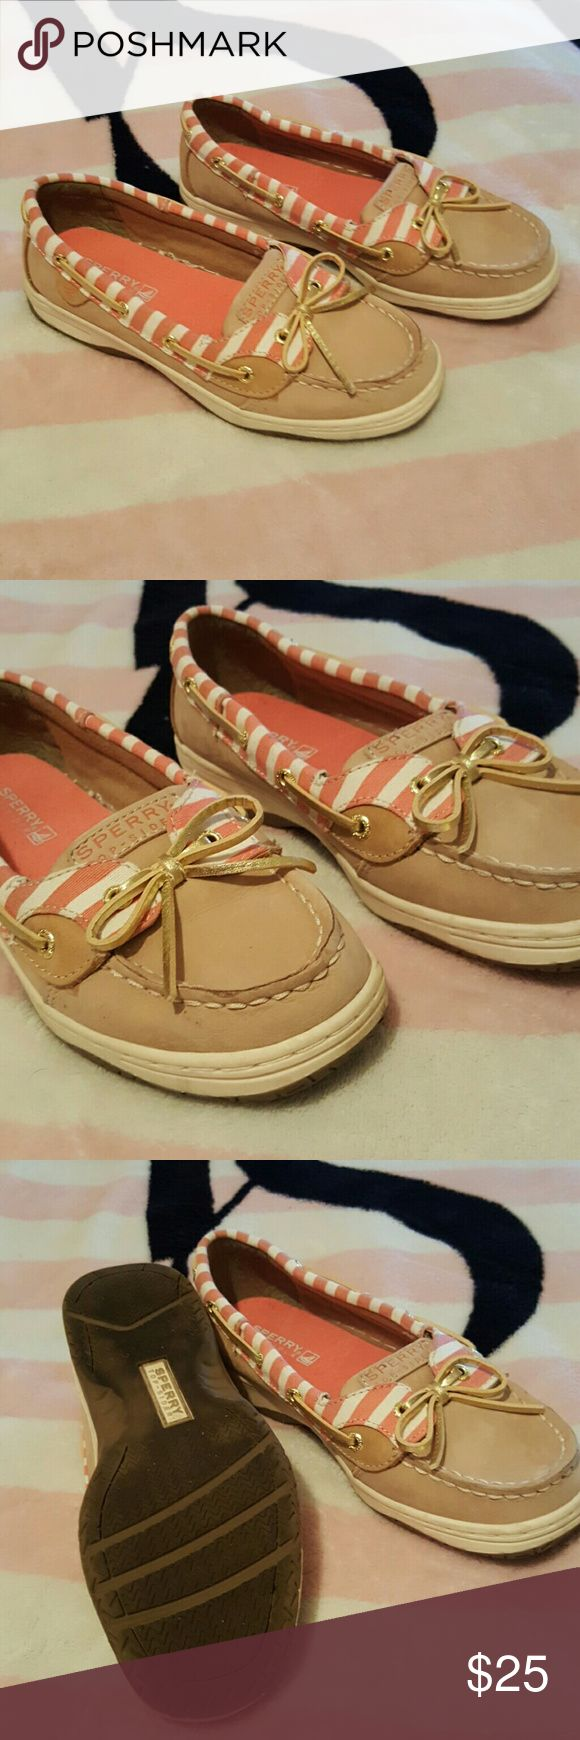 Sperry top sider shoes Tan with pink and white top sider shoes, gold tone laces ... worn maybe 4 times .. size 4M in youth .. woman size 6 .. PLEASE MAKE OFFER :) Sperry Top-Sider Shoes Flats & Loafers